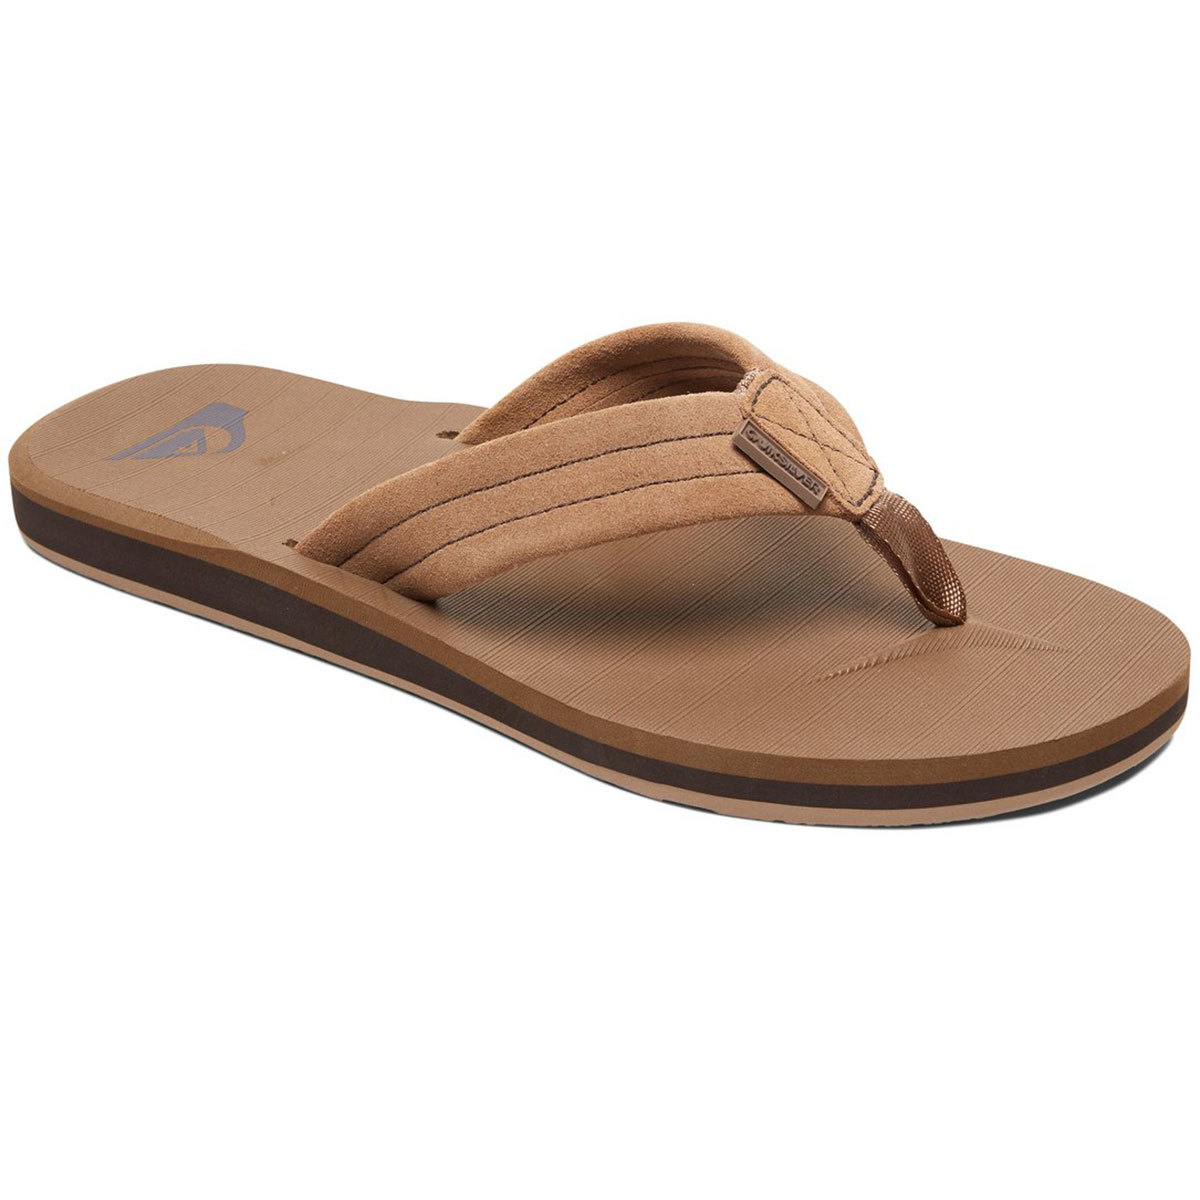 Quiksilver Boys' Carver Flip Flop Sandals - Brown, 5